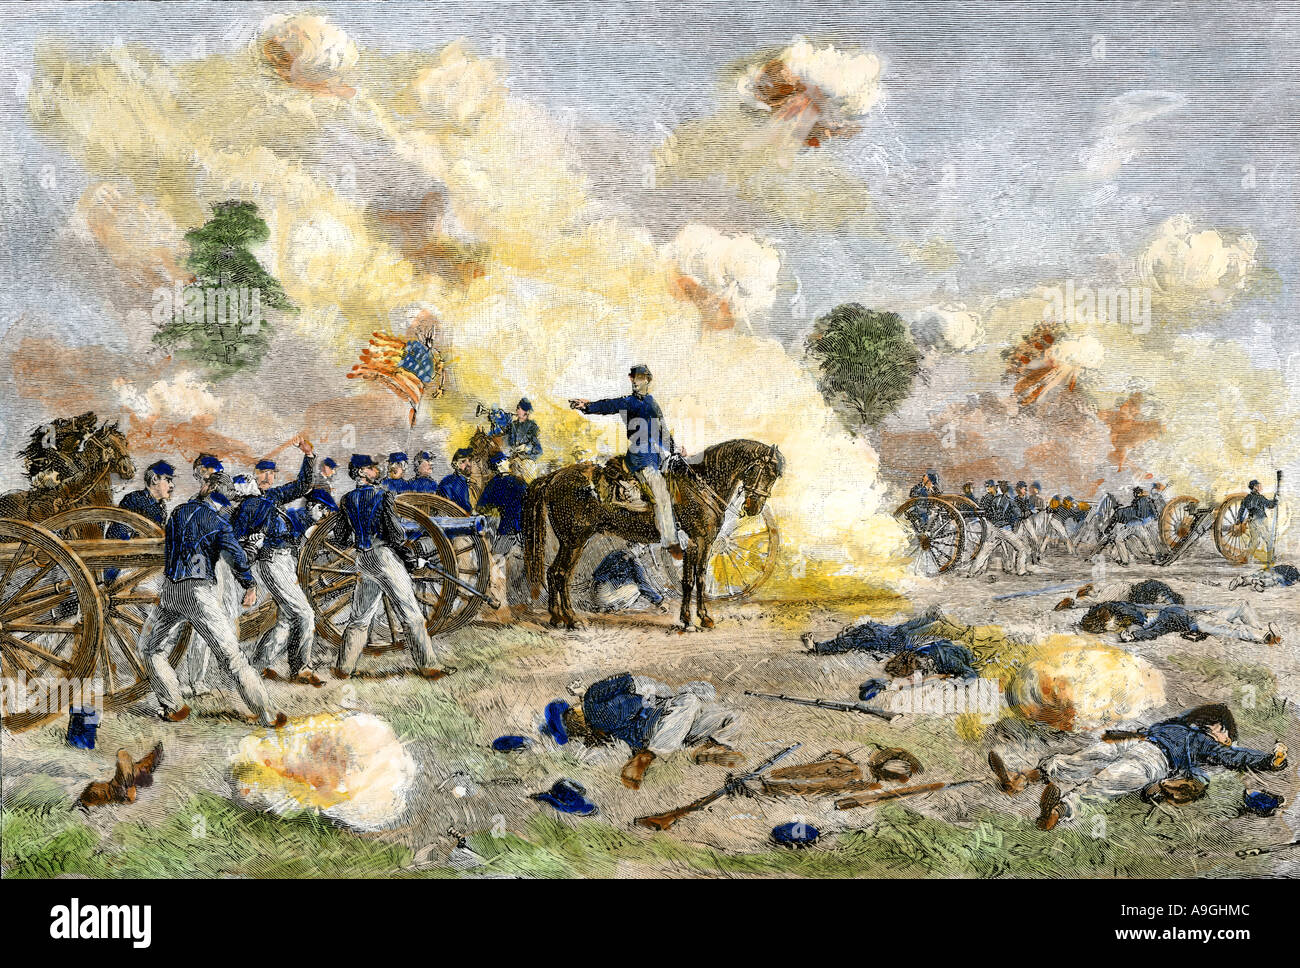 Fourth US artillery under Lt. Bayard Wilkeson firing from an exposed position during the Battle of Gettysburg 1863. Hand-colored woodcut - Stock Image